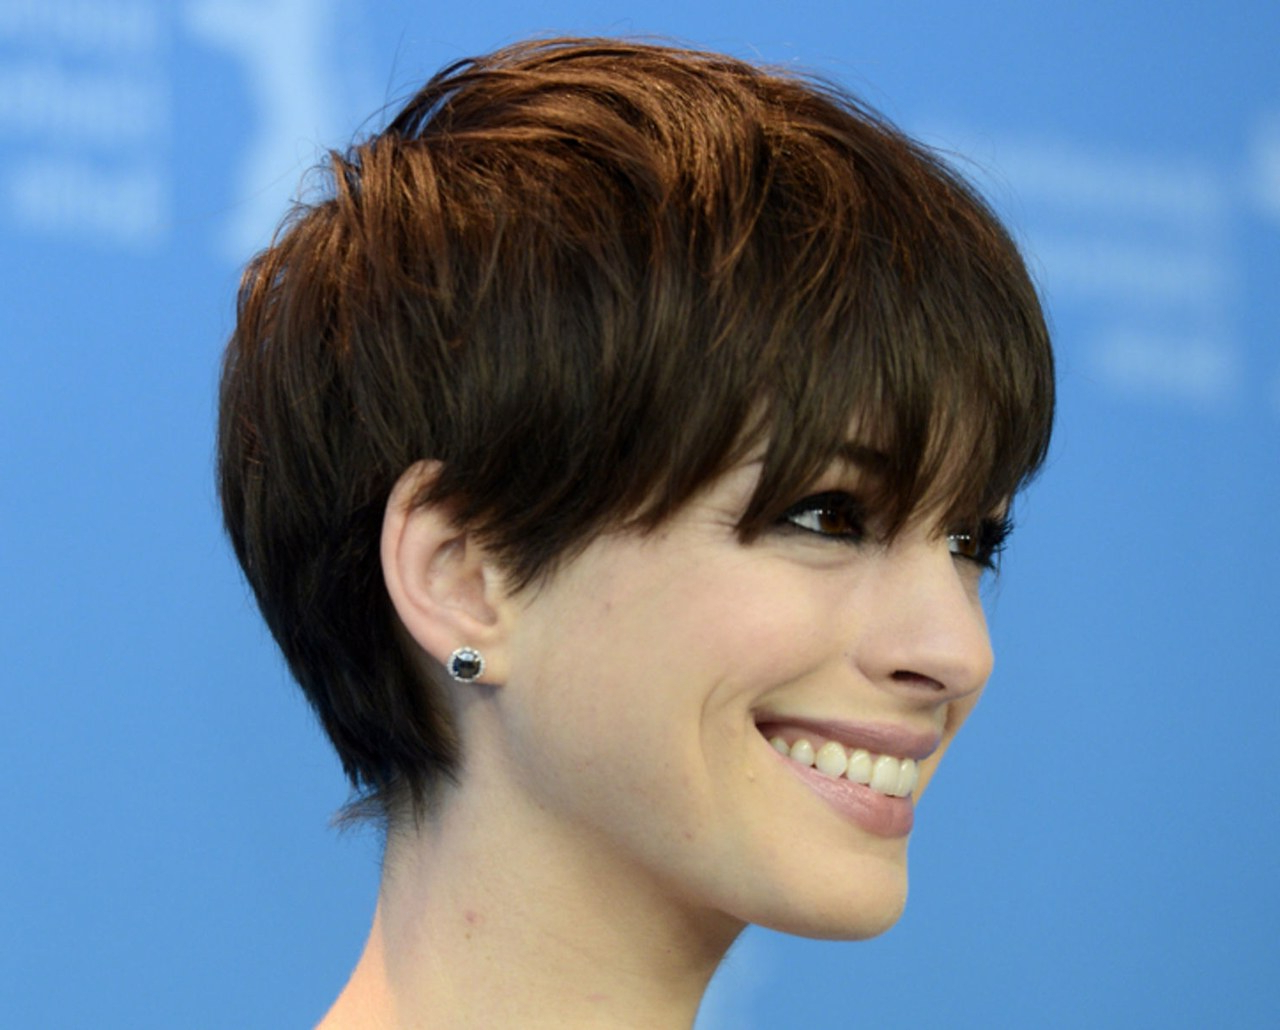 Anne Hathaway Has The Best Bangs I've Seen In A Long Time | Glamour Inside Anne Hathaway Short Haircuts (Gallery 18 of 25)